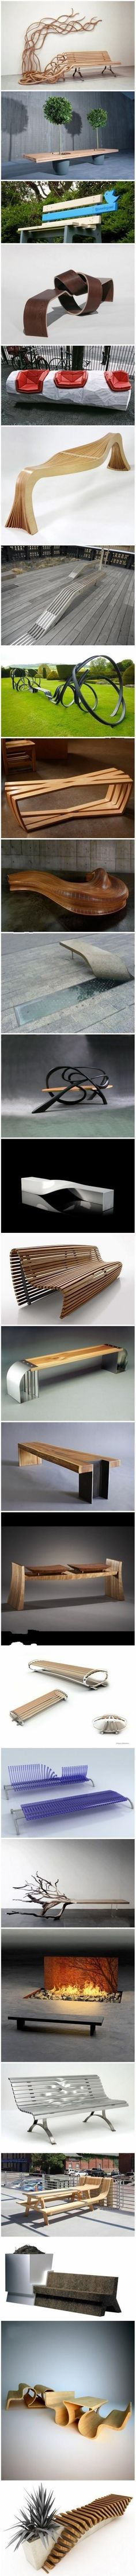 26 excellent public benches design These would make the garden interesting. Urban Furniture, Street Furniture, Cool Furniture, Furniture Design, Furniture Ideas, Landscape Architecture, Landscape Design, Architecture Design, Bench Designs